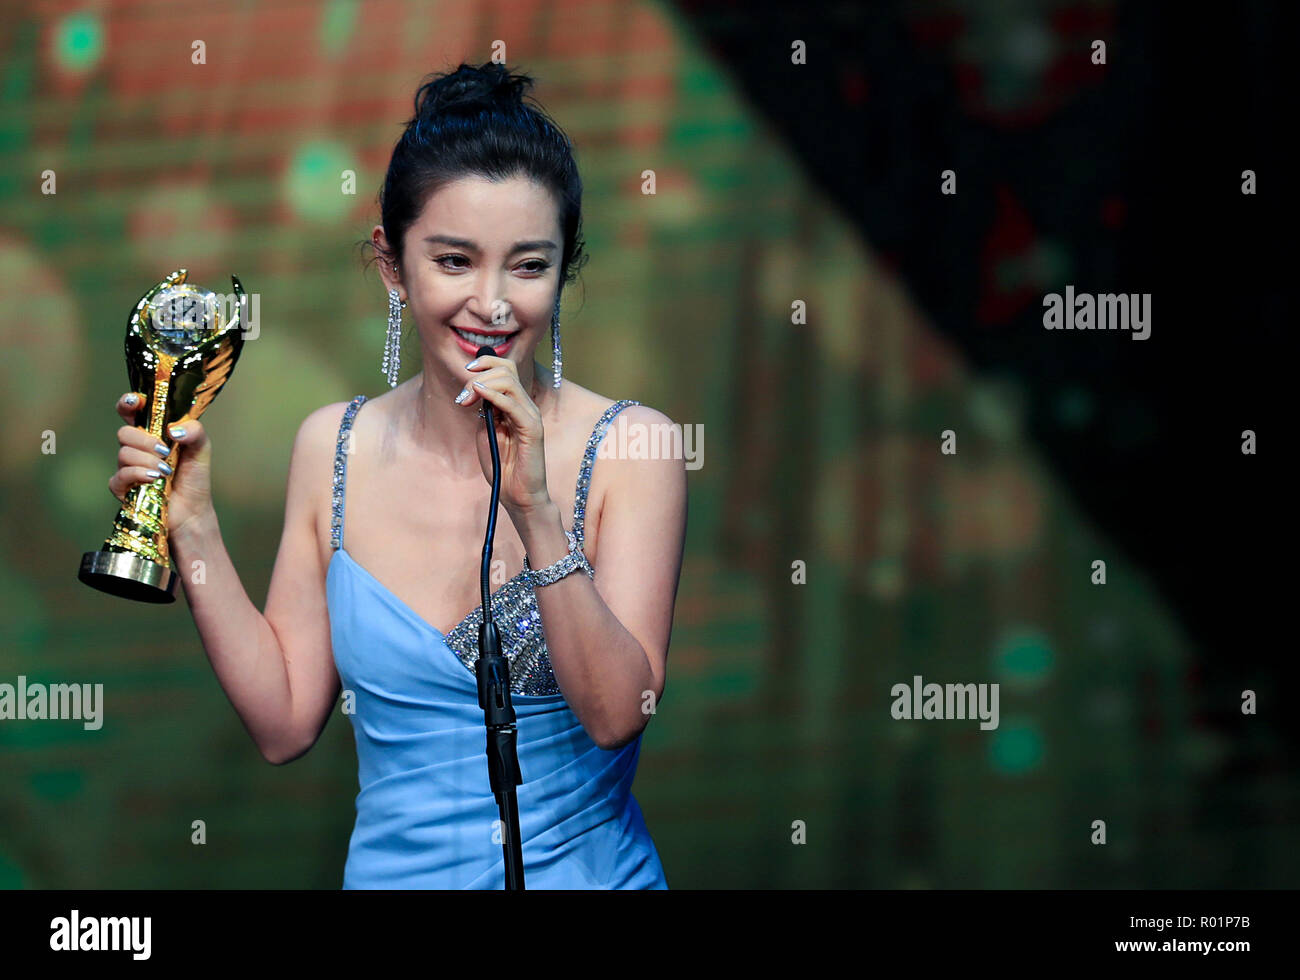 Los Angeles, USA. 30th Oct, 2018. Actress Li Bingbing who won the Chinese American Film Art Exchange Award, receives the trophy during the awarding ceremony of the 14th Chinese American Film Festival (CAFF) in Los Angeles, the United States, Oct. 30, 2018. The 14th Chinese American Film Festival (CAFF) kicked off Tuesday at the Ricardo Montalban Theater in Hollywood in the U.S. city of Los Angeles. Credit: Li Ying/Xinhua/Alamy Live News - Stock Image